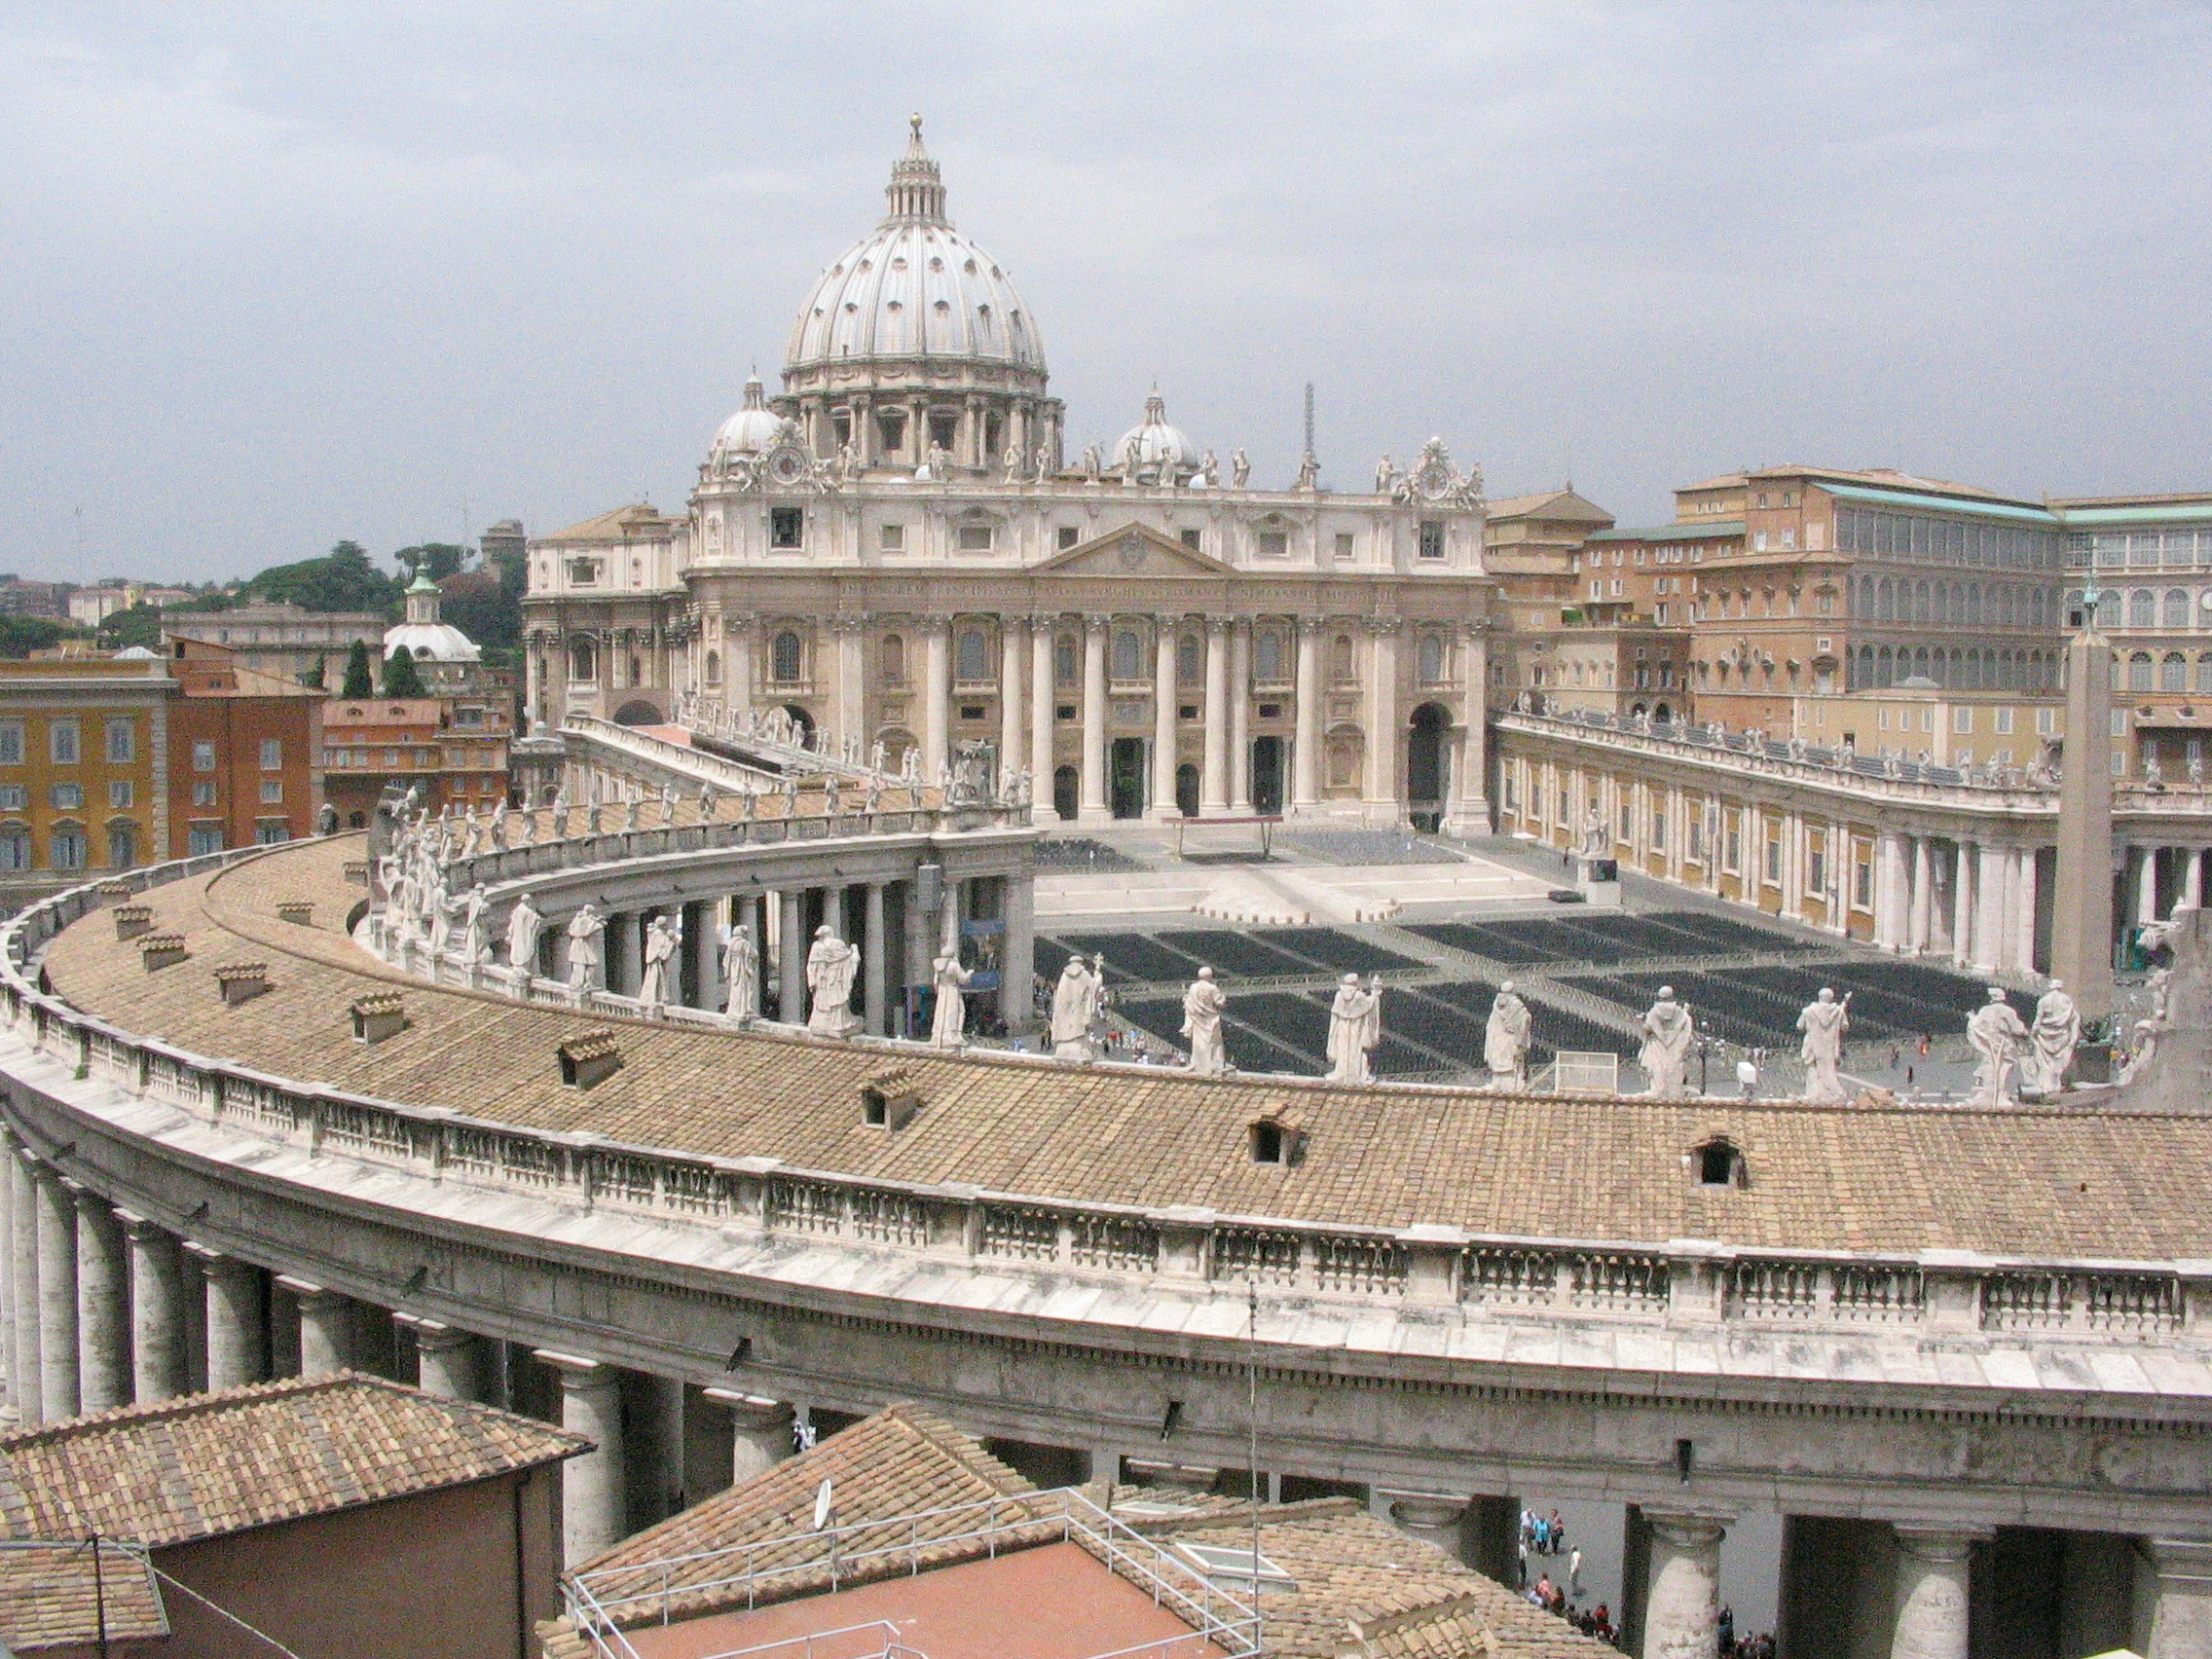 [imagetag] http://upload.wikimedia.org/wikipedia/commons/1/12/View_of_saint_Peter_basilica_from_a_roof.jpg